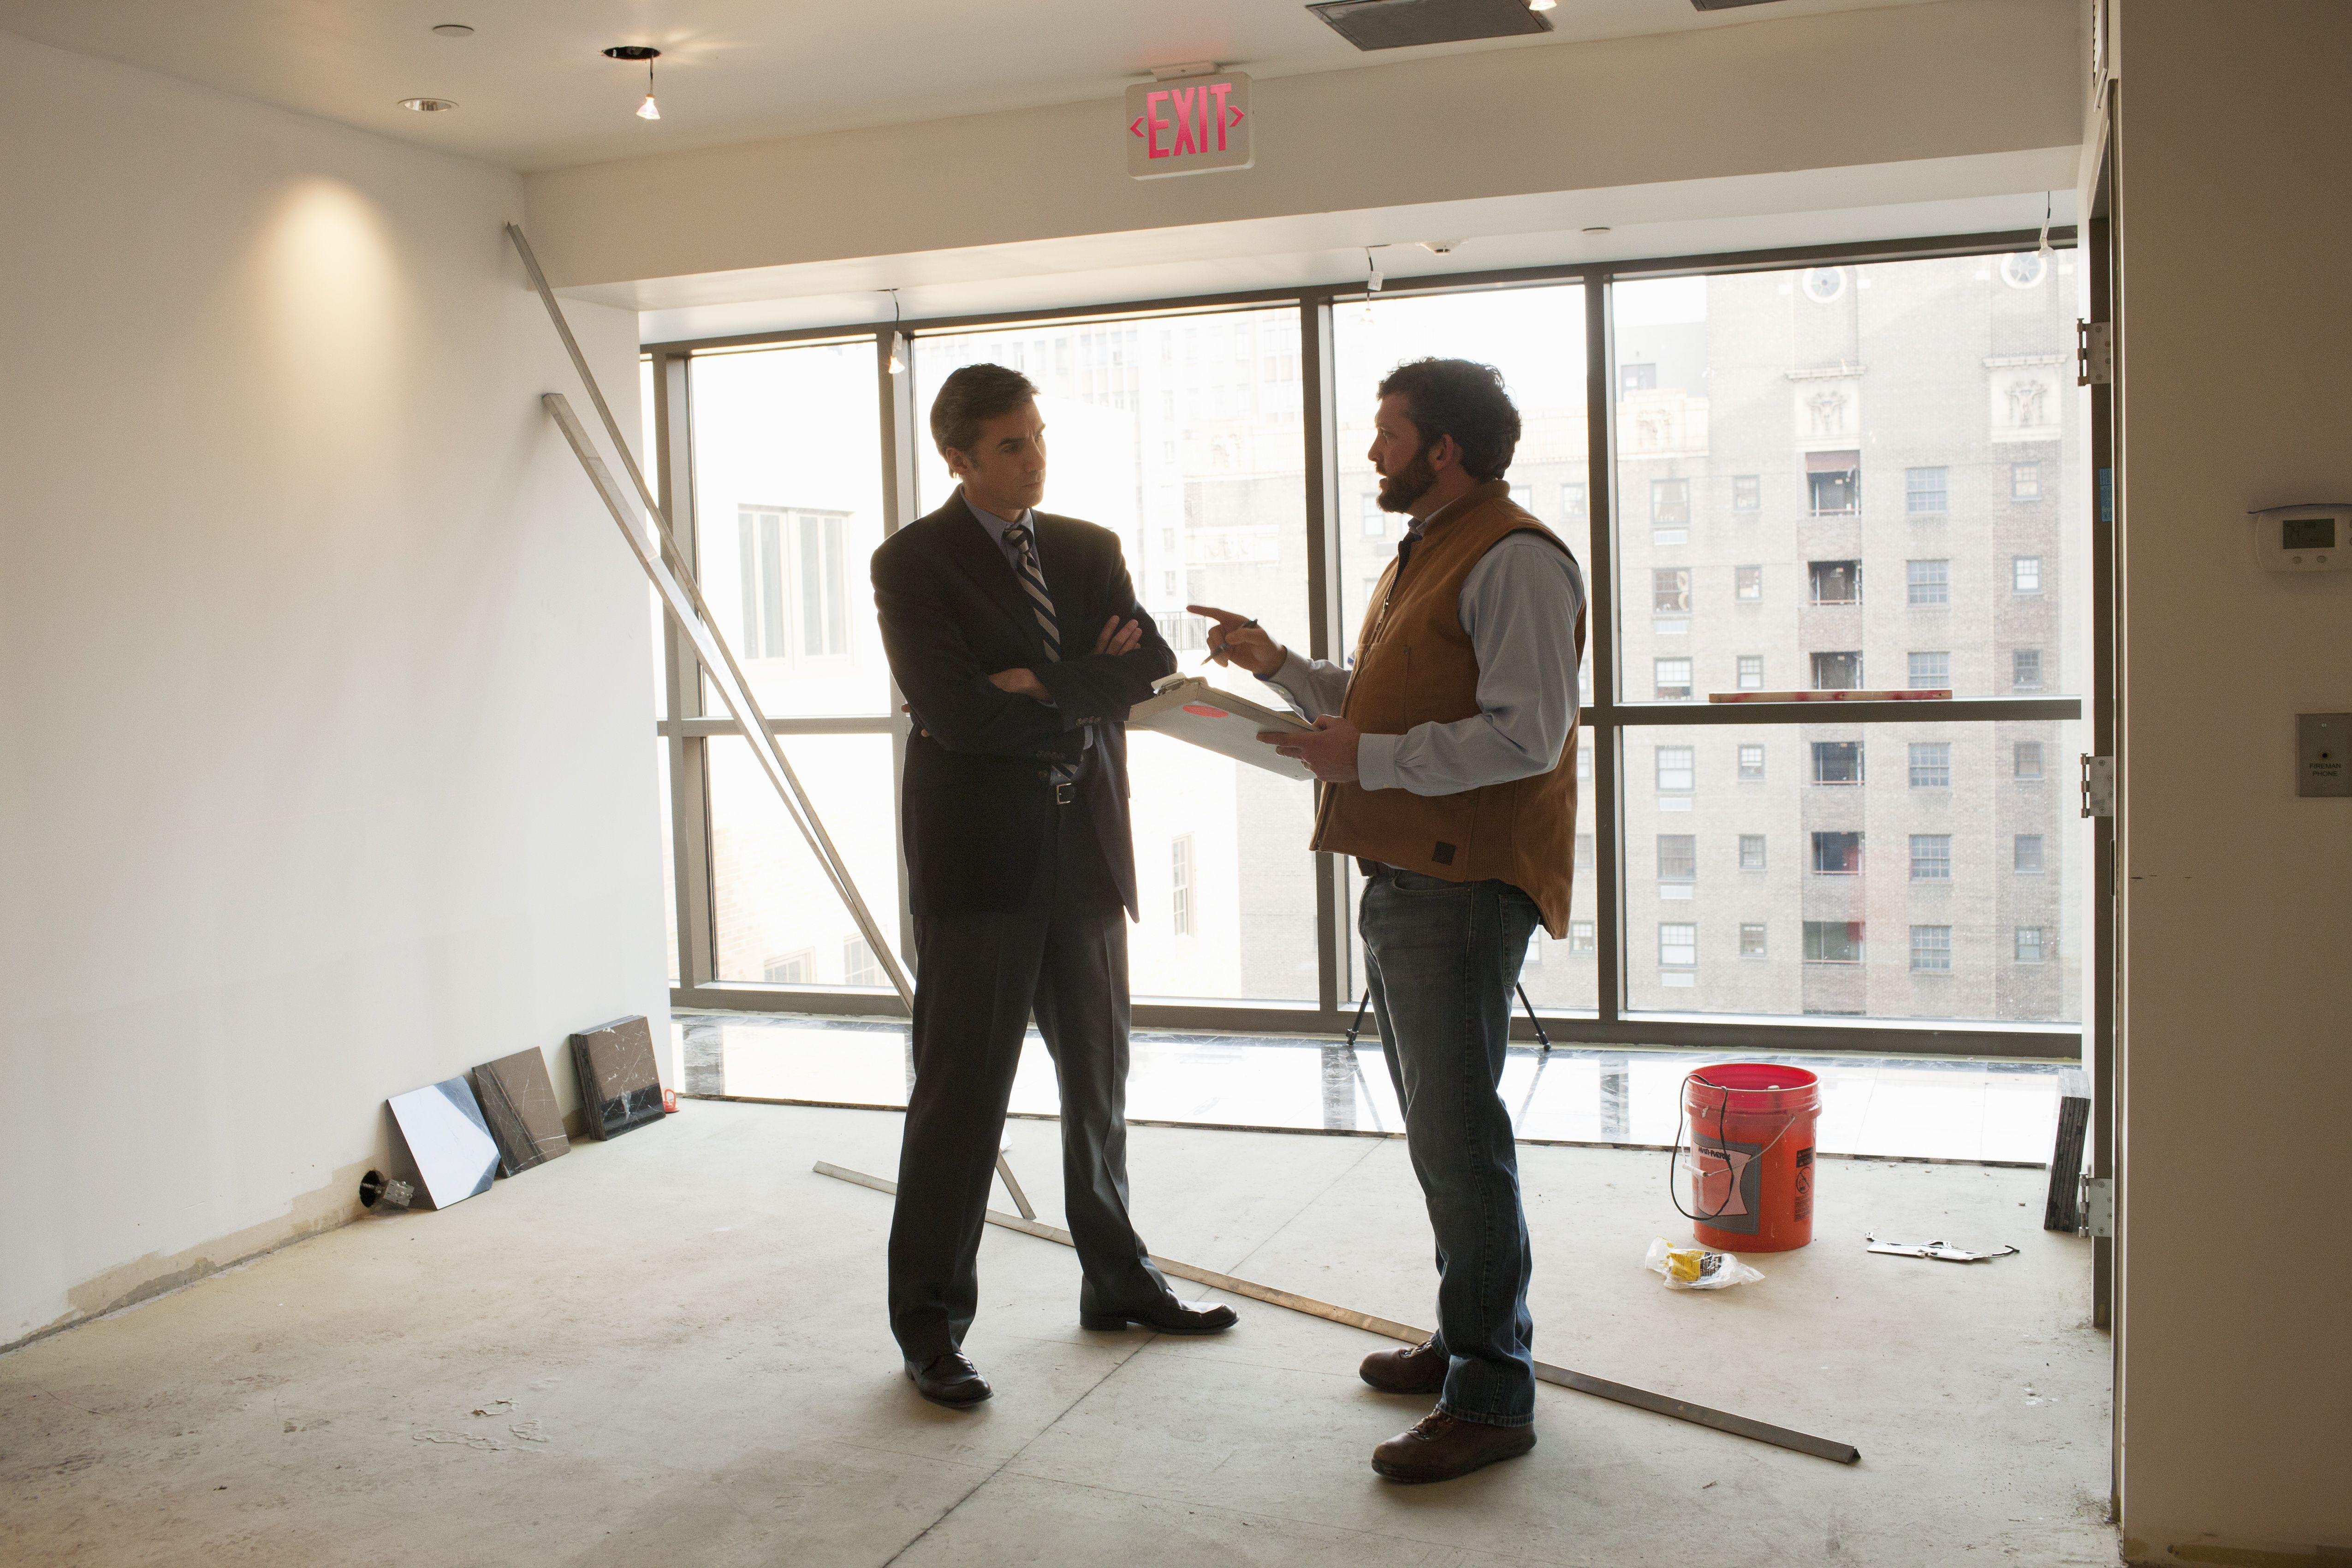 Manager talking to maintenance supervisor in empty room